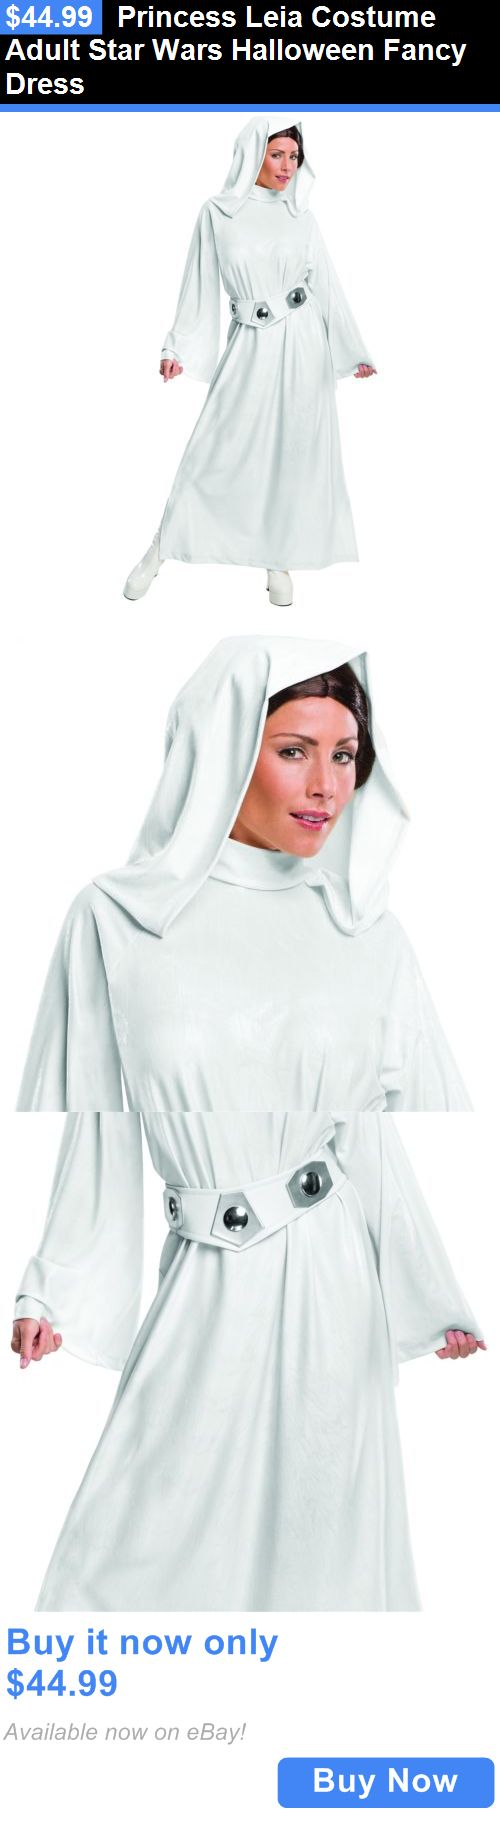 Halloween Costumes Women: Princess Leia Costume Adult Star Wars Halloween Fancy Dress BUY IT NOW ONLY: $44.99